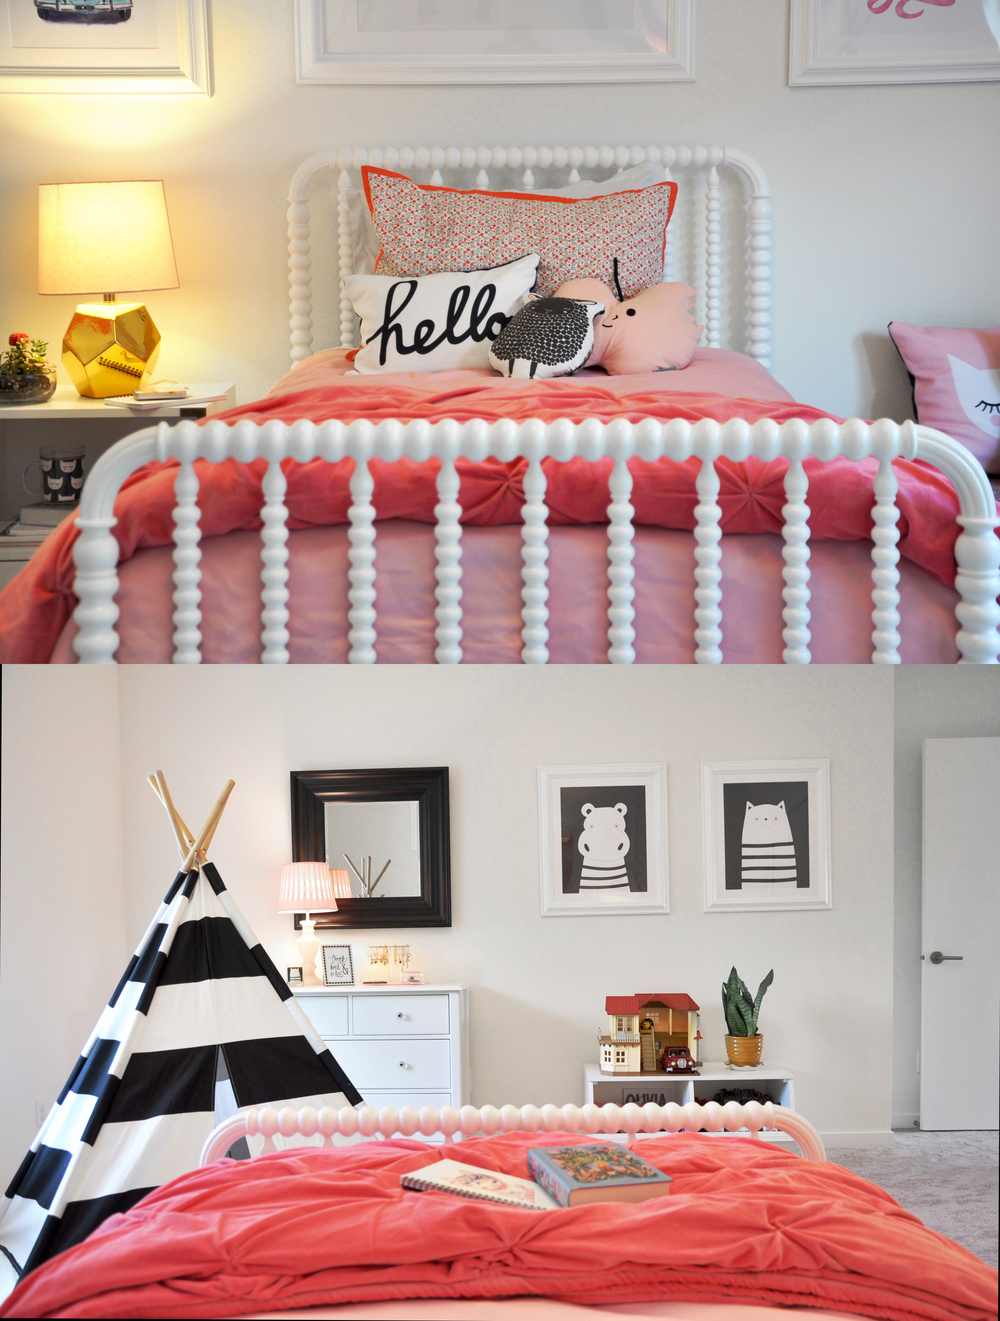 Hippo and Cat Wall Art: Upload Your Own Design Art Print | Low Level Cubby Storage:  Storagepalooza  | A Teepee to Call Your Own |